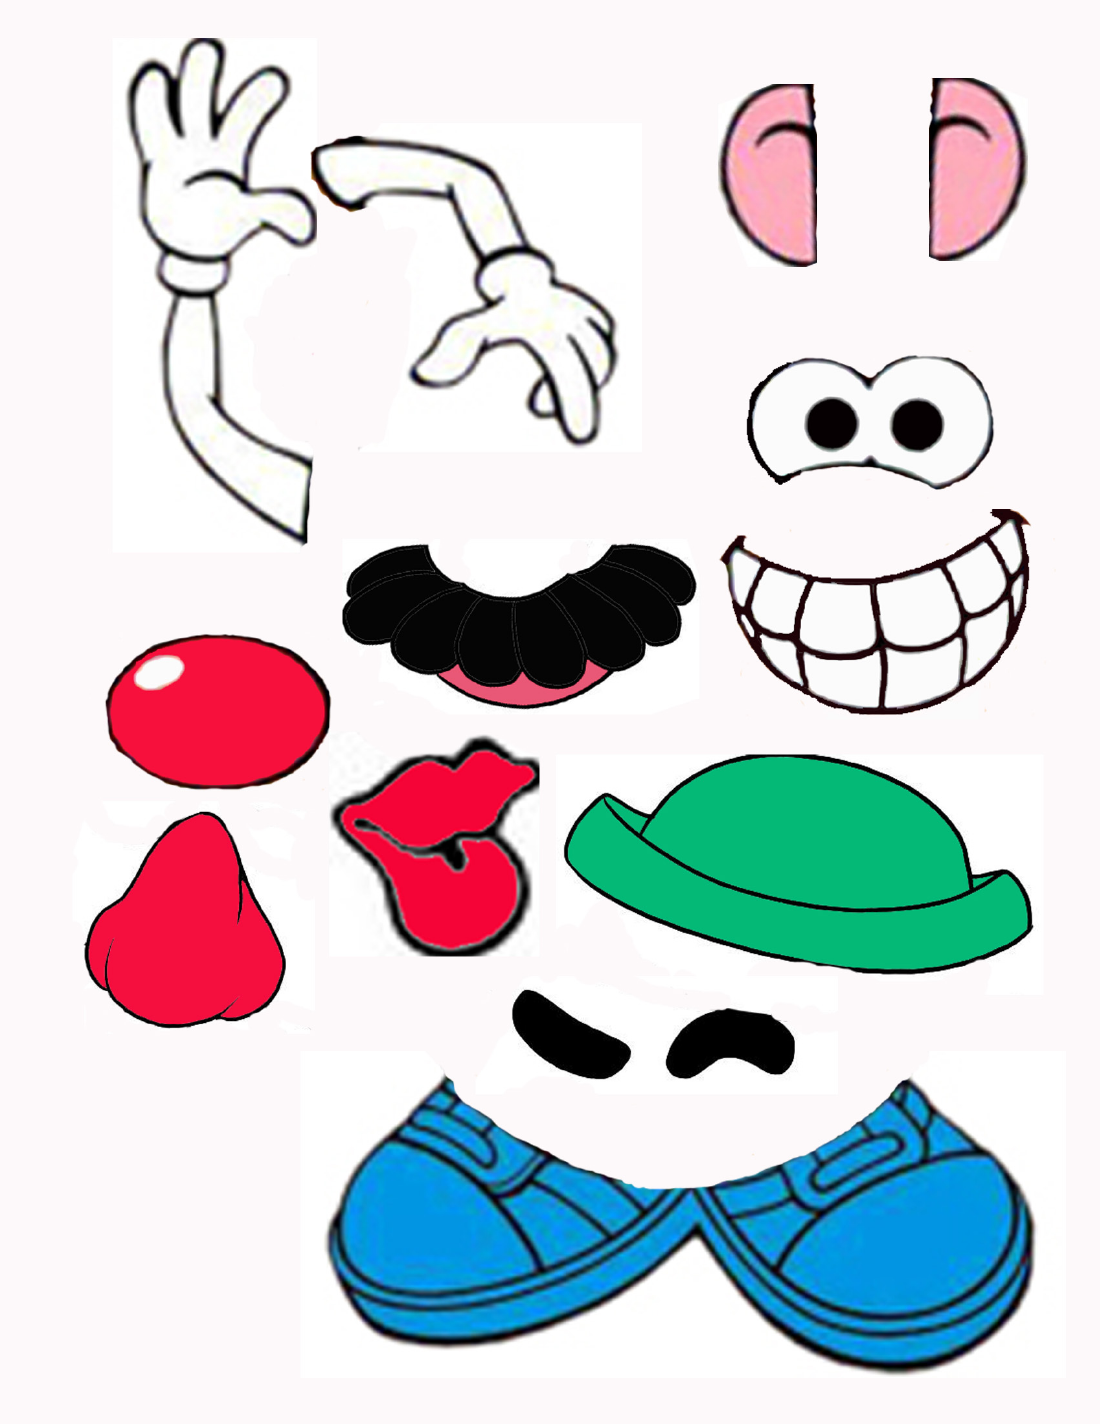 graphic about Mr Potato Head Printable known as mr potato mind pieces printable - Google Appear Sensory